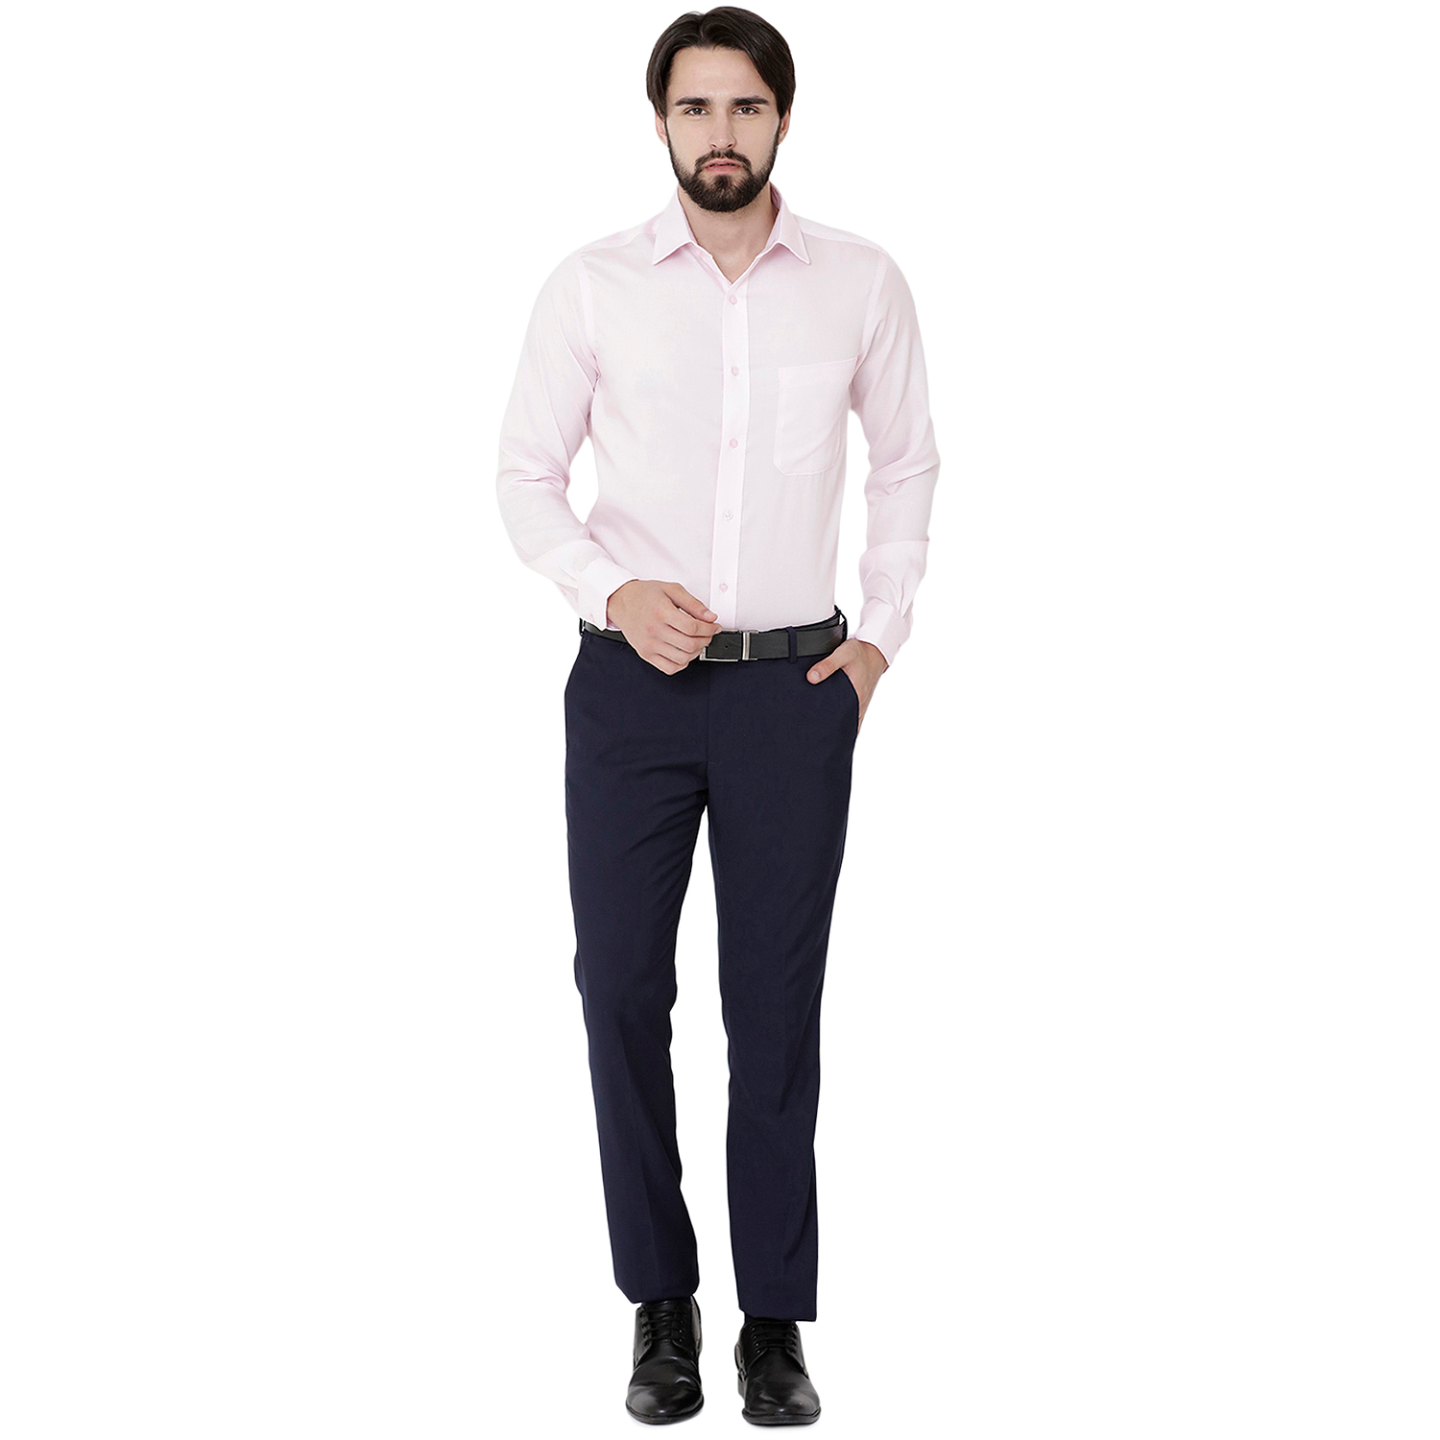 Double TWO Paradigm Mens Solid Pale Pink Pure Cotton Non-Iron Wrinkle Free Shirt